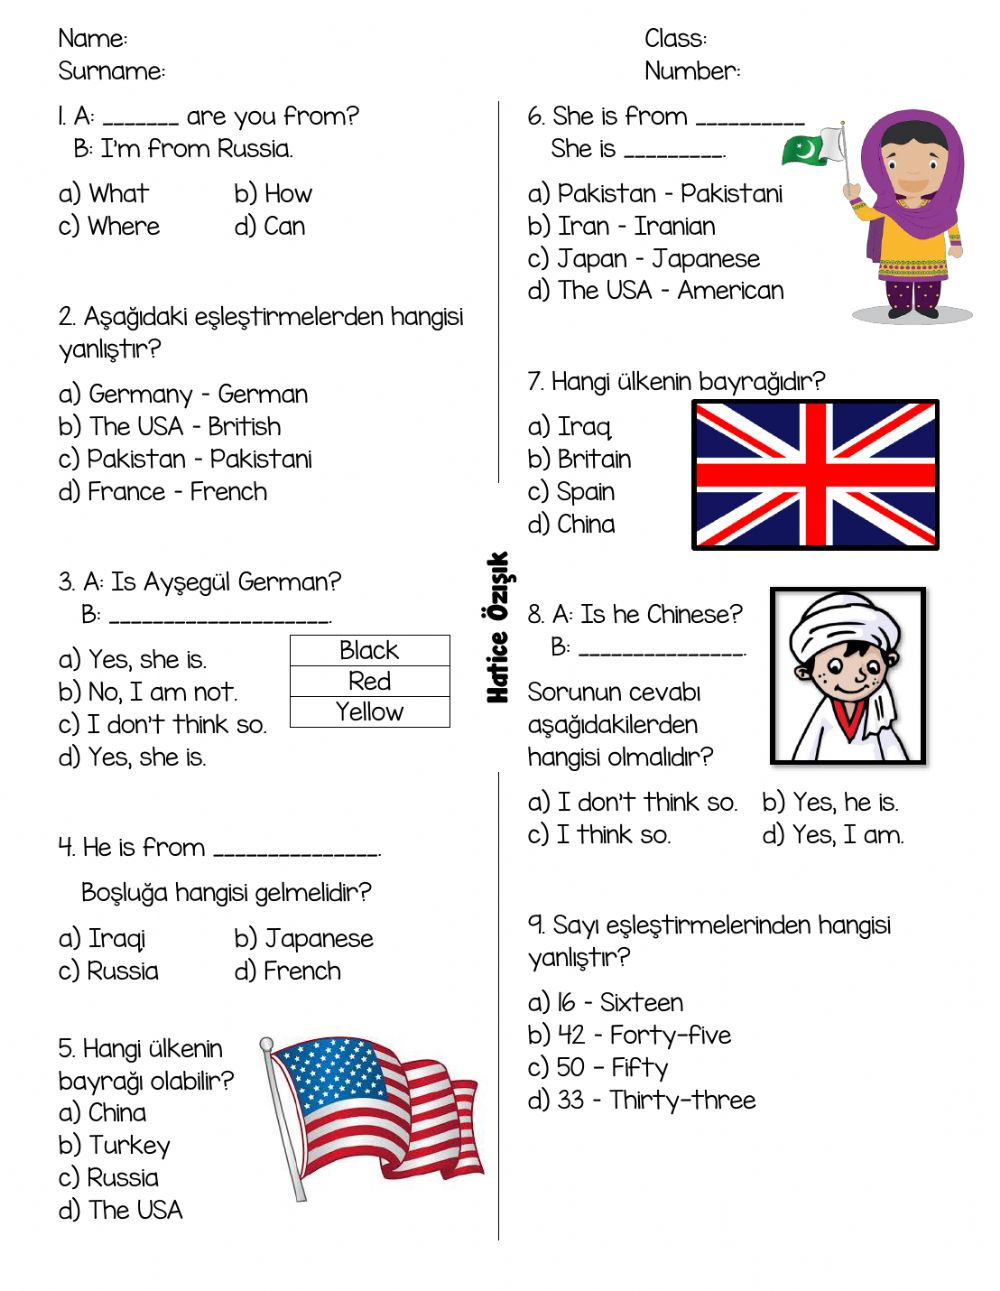 200.20. Countries and Nationalities Quiz for 200th Grades worksheet